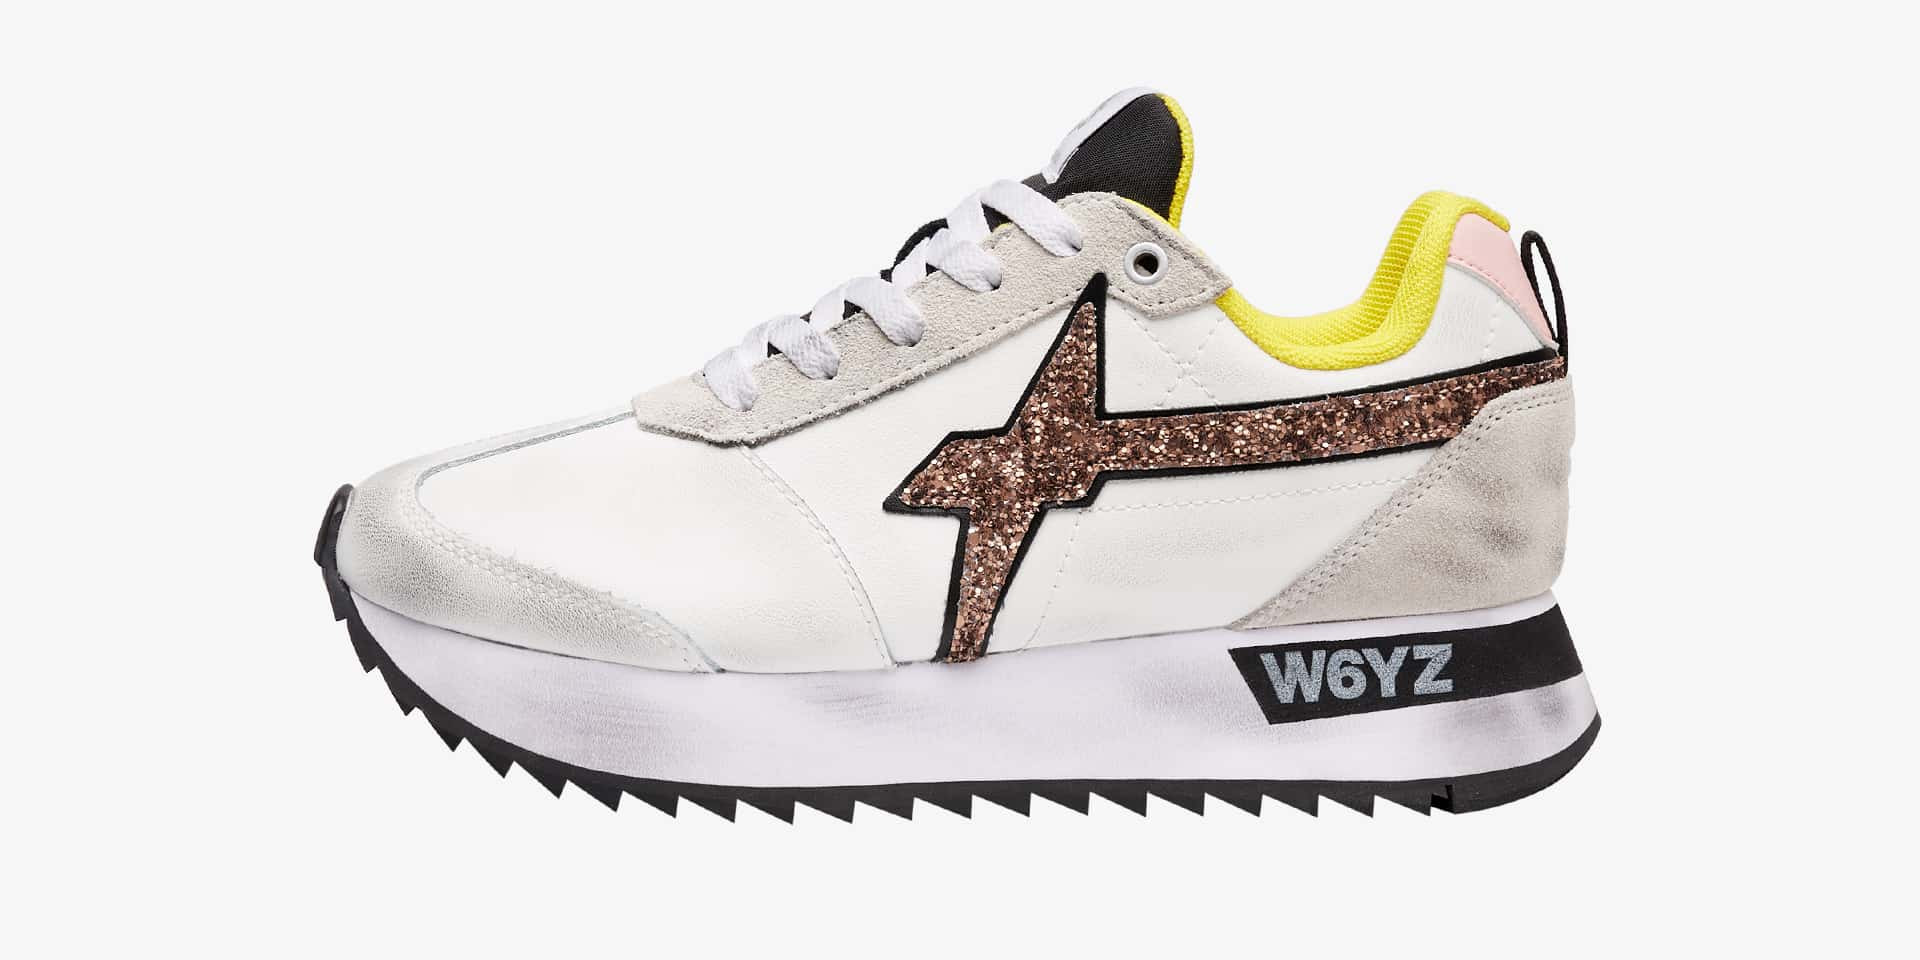 KIS-W. - Leather, suede and glitter sneakers - White